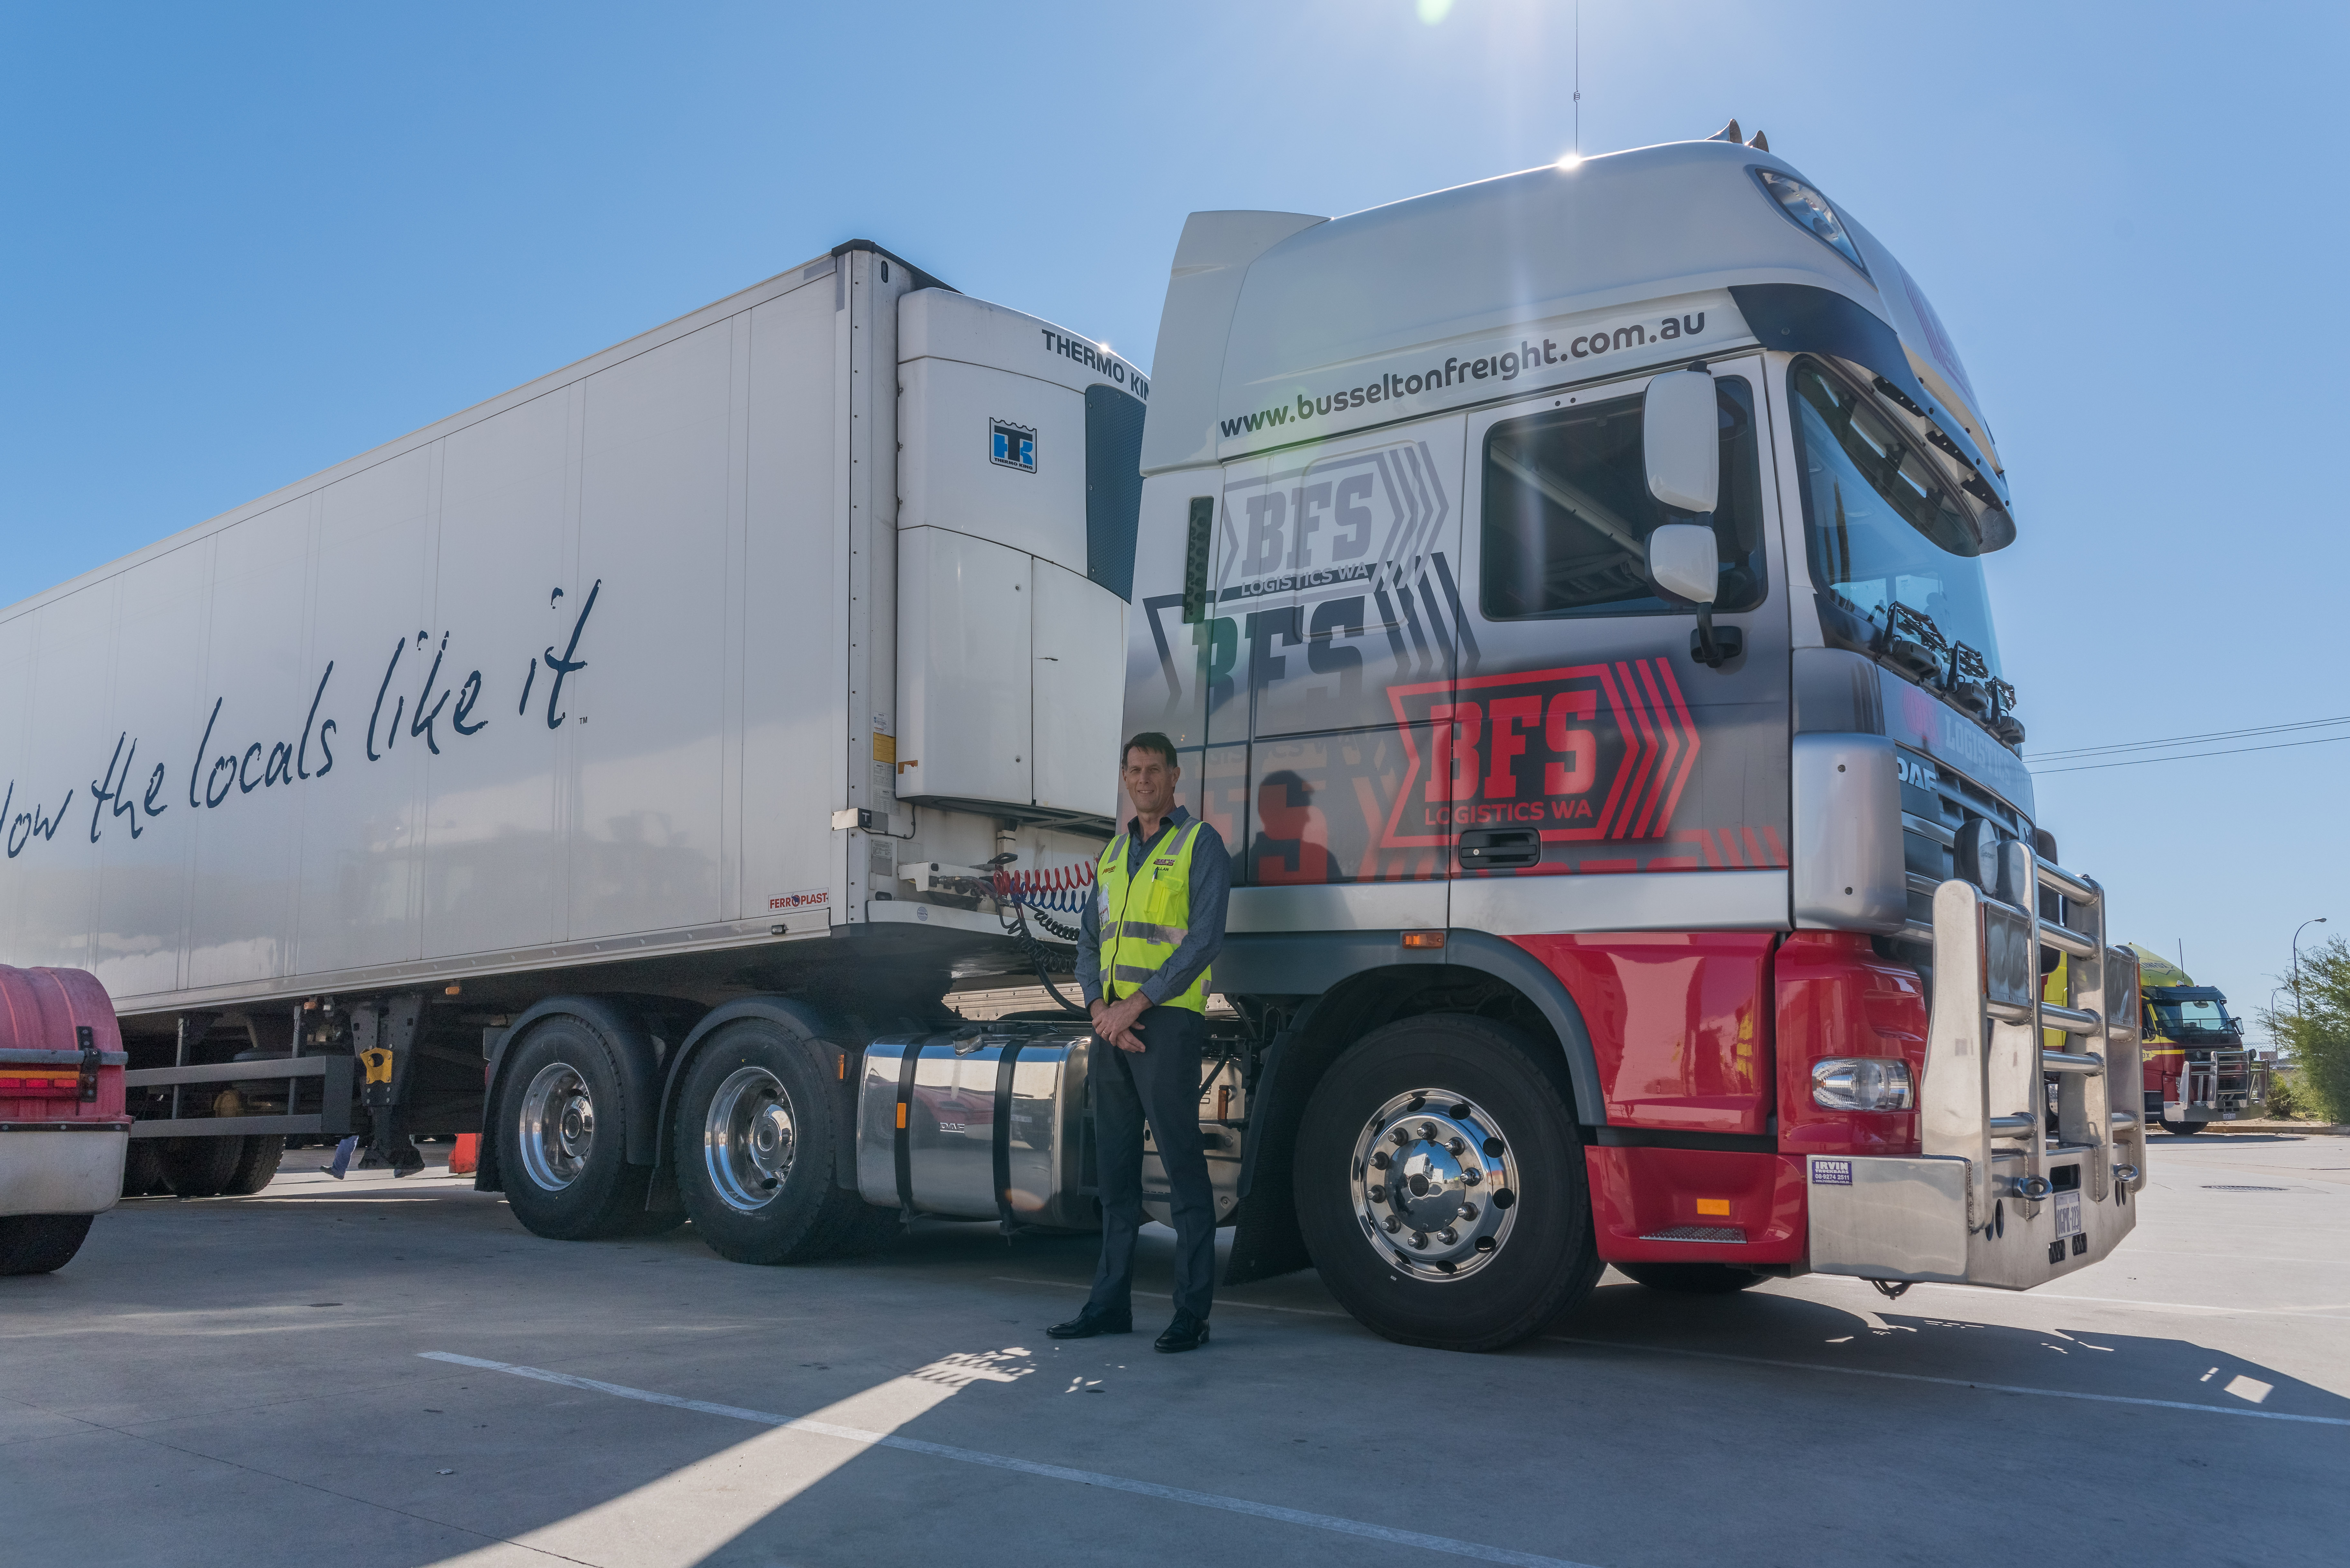 Busselton Freight Services